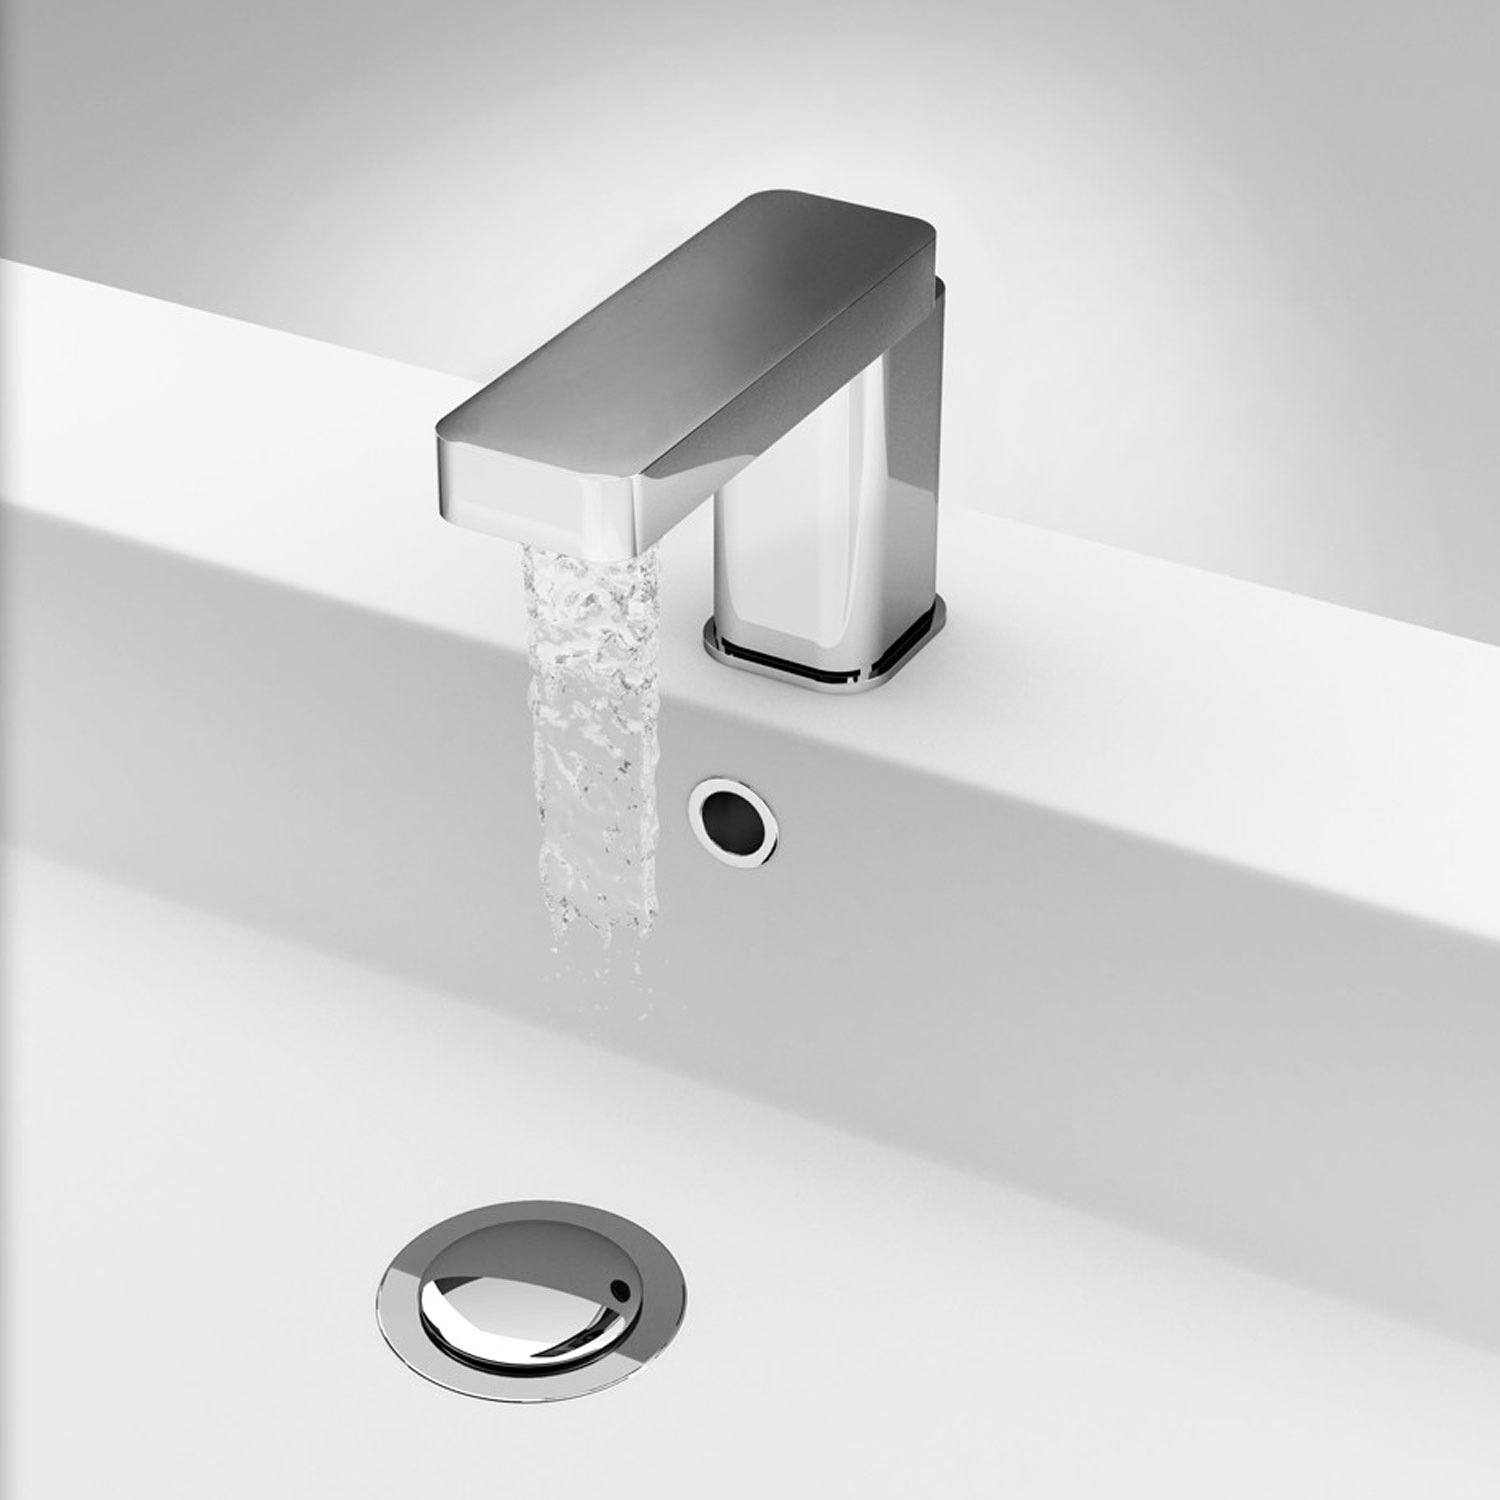 Verona Slyde Mono Basin Mixer Tap with Pop-Up Waste - Chrome-3